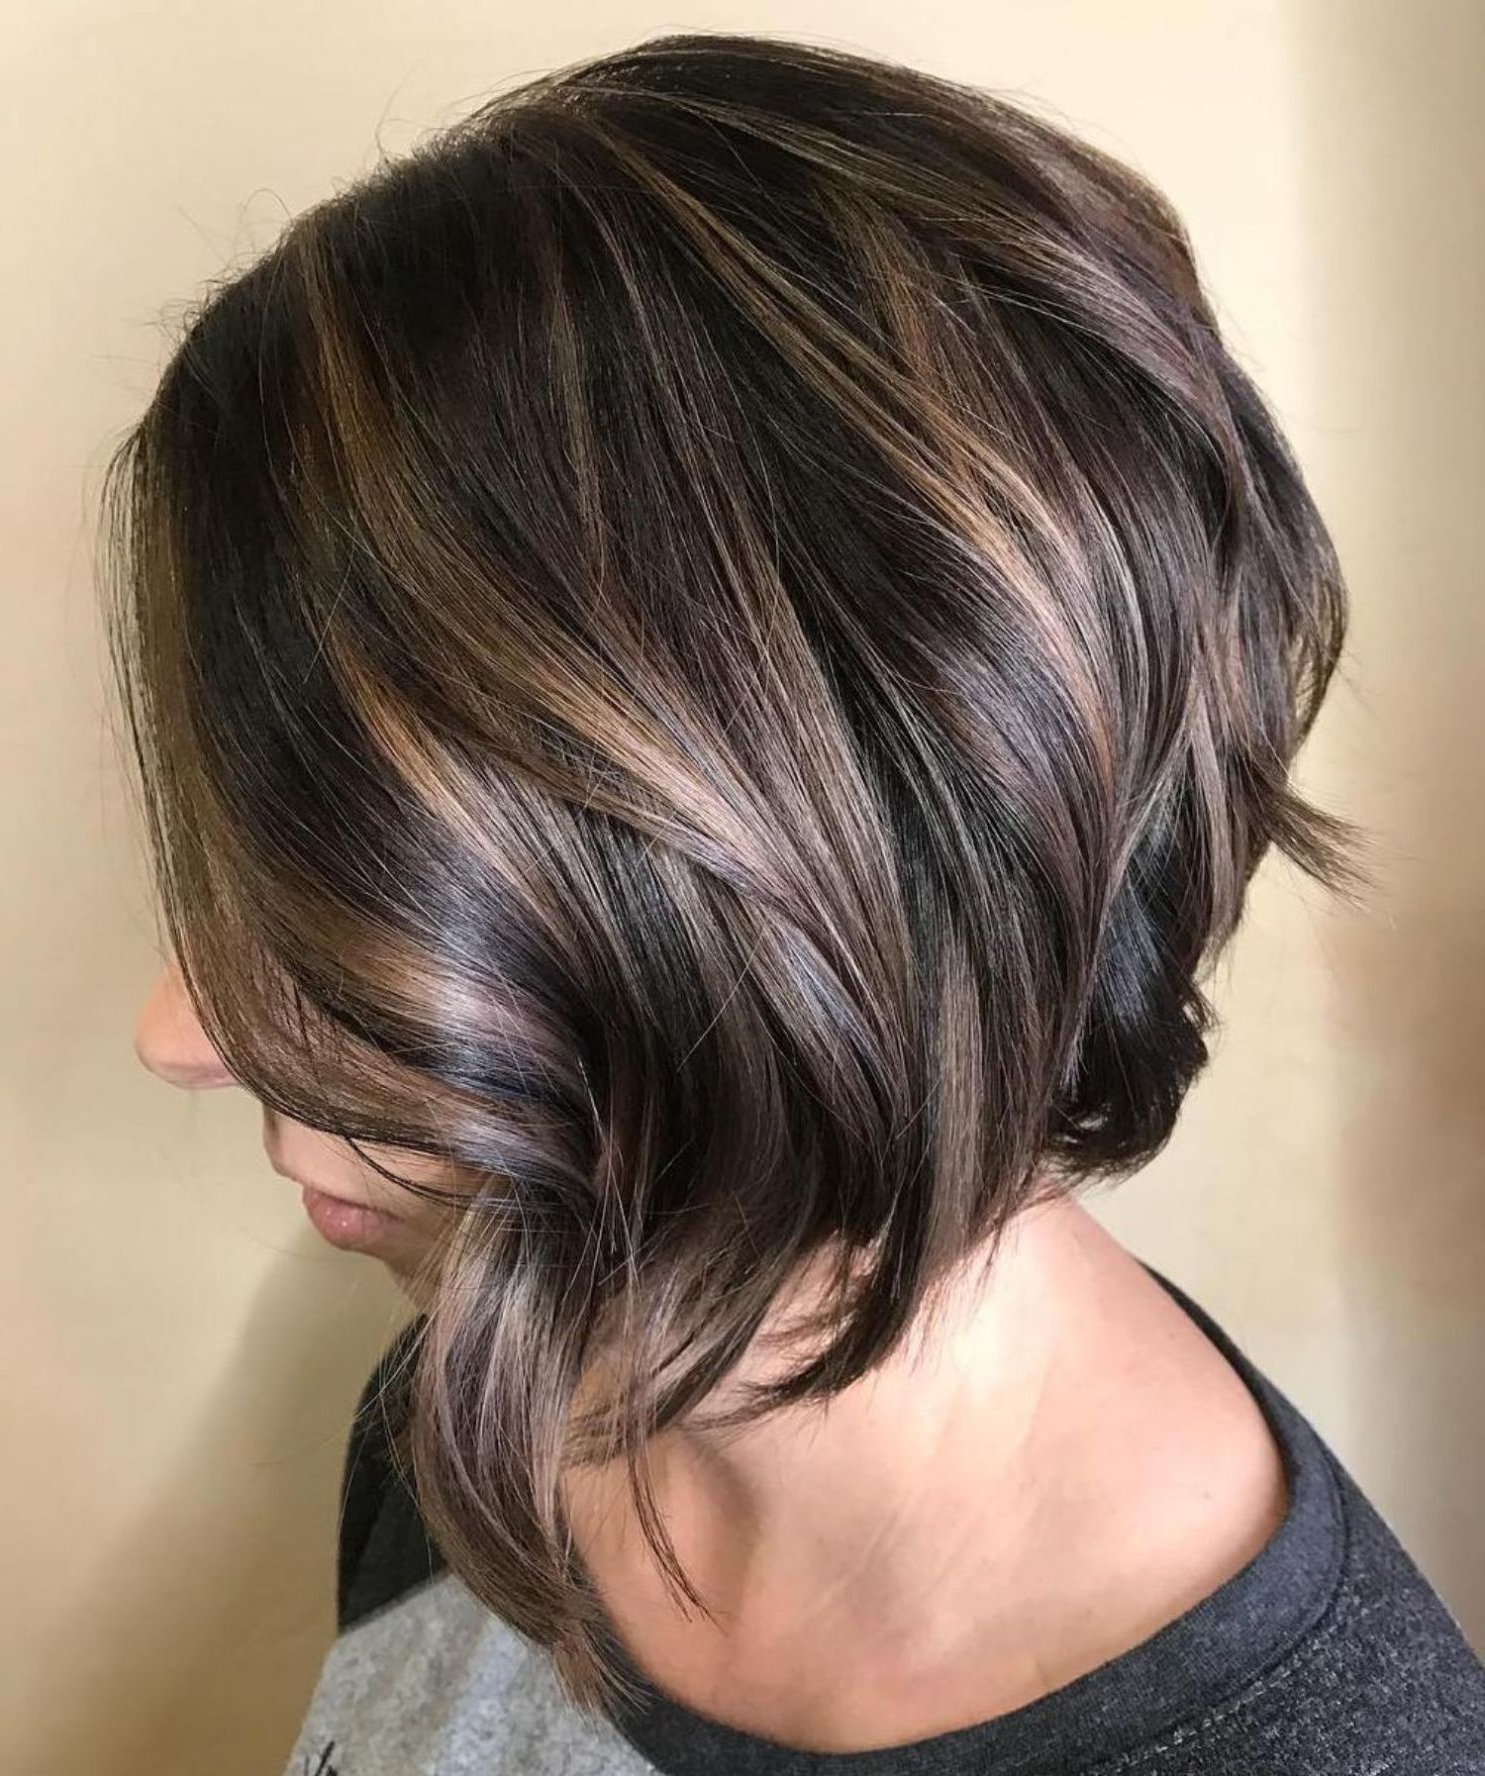 70 Best A Line Bob Hairstyles Screaming With Class And Style In 2019 Pertaining To Well Known Cute A Line Bob Hairstyles With Volume Towards The Ends (Gallery 6 of 20)